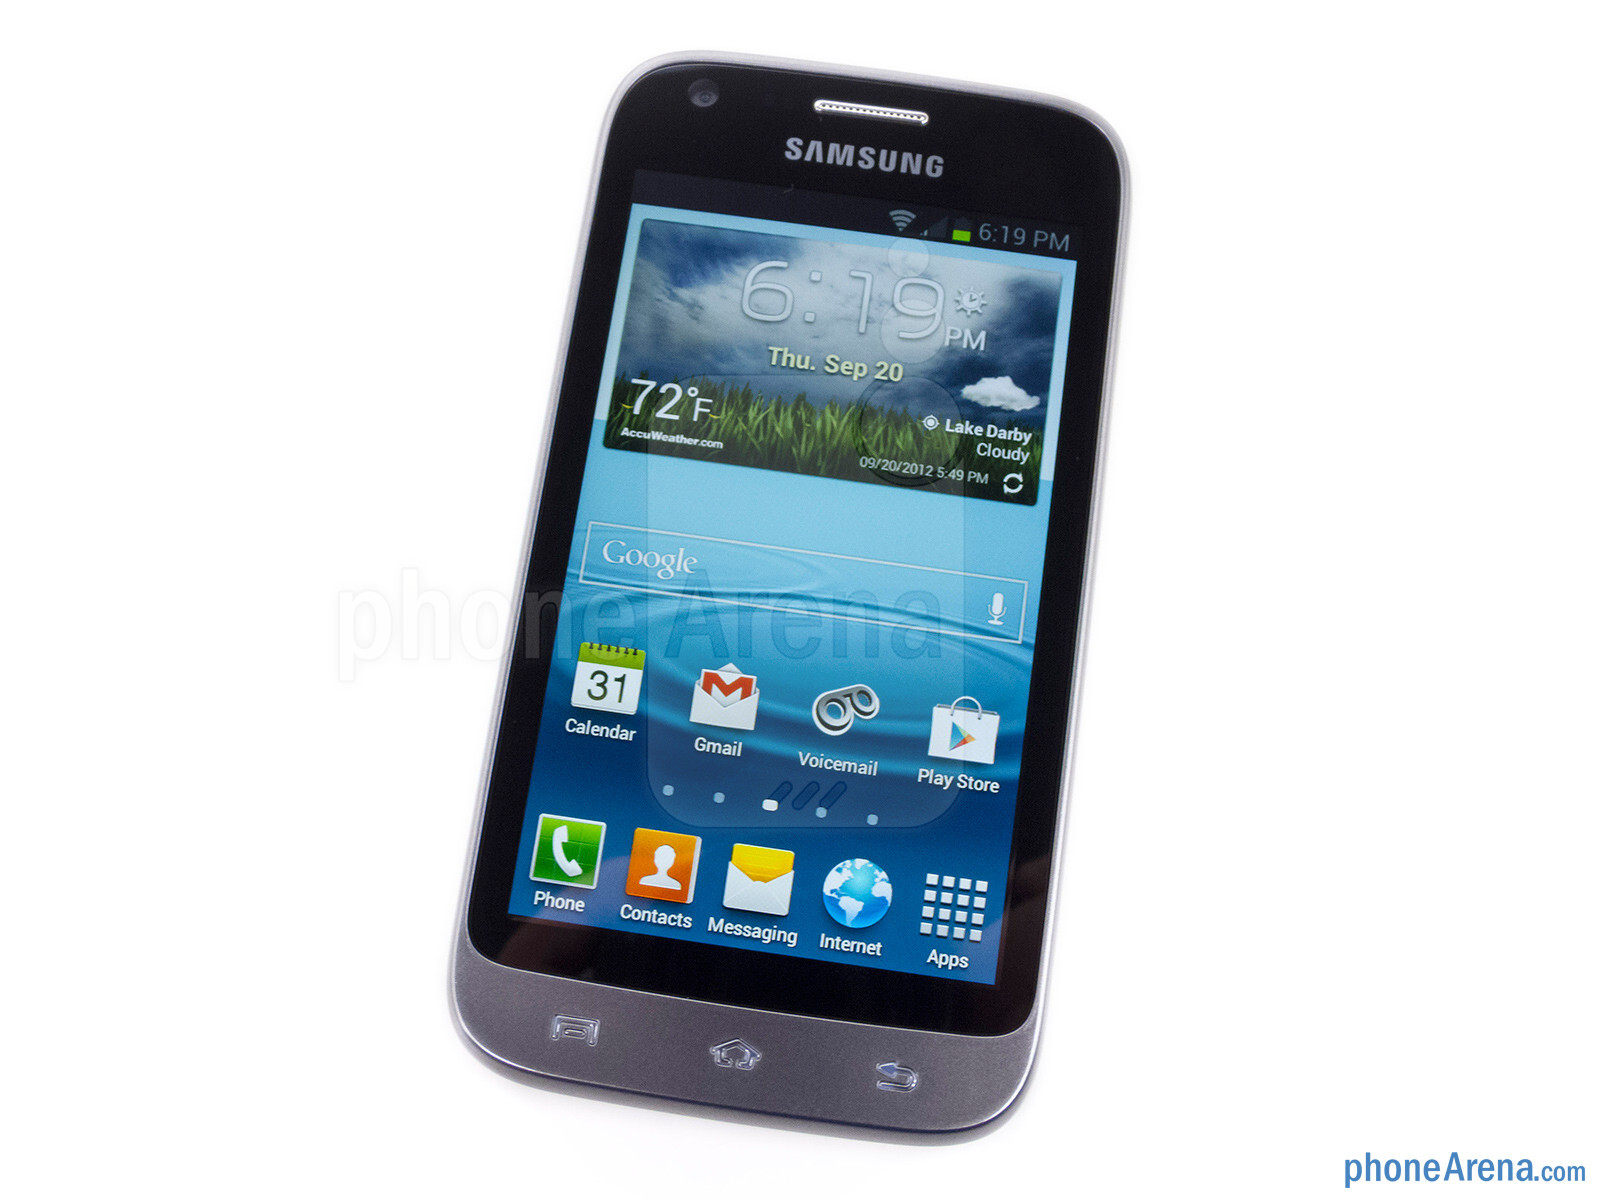 samsung galaxy victory 4g lte review. Black Bedroom Furniture Sets. Home Design Ideas